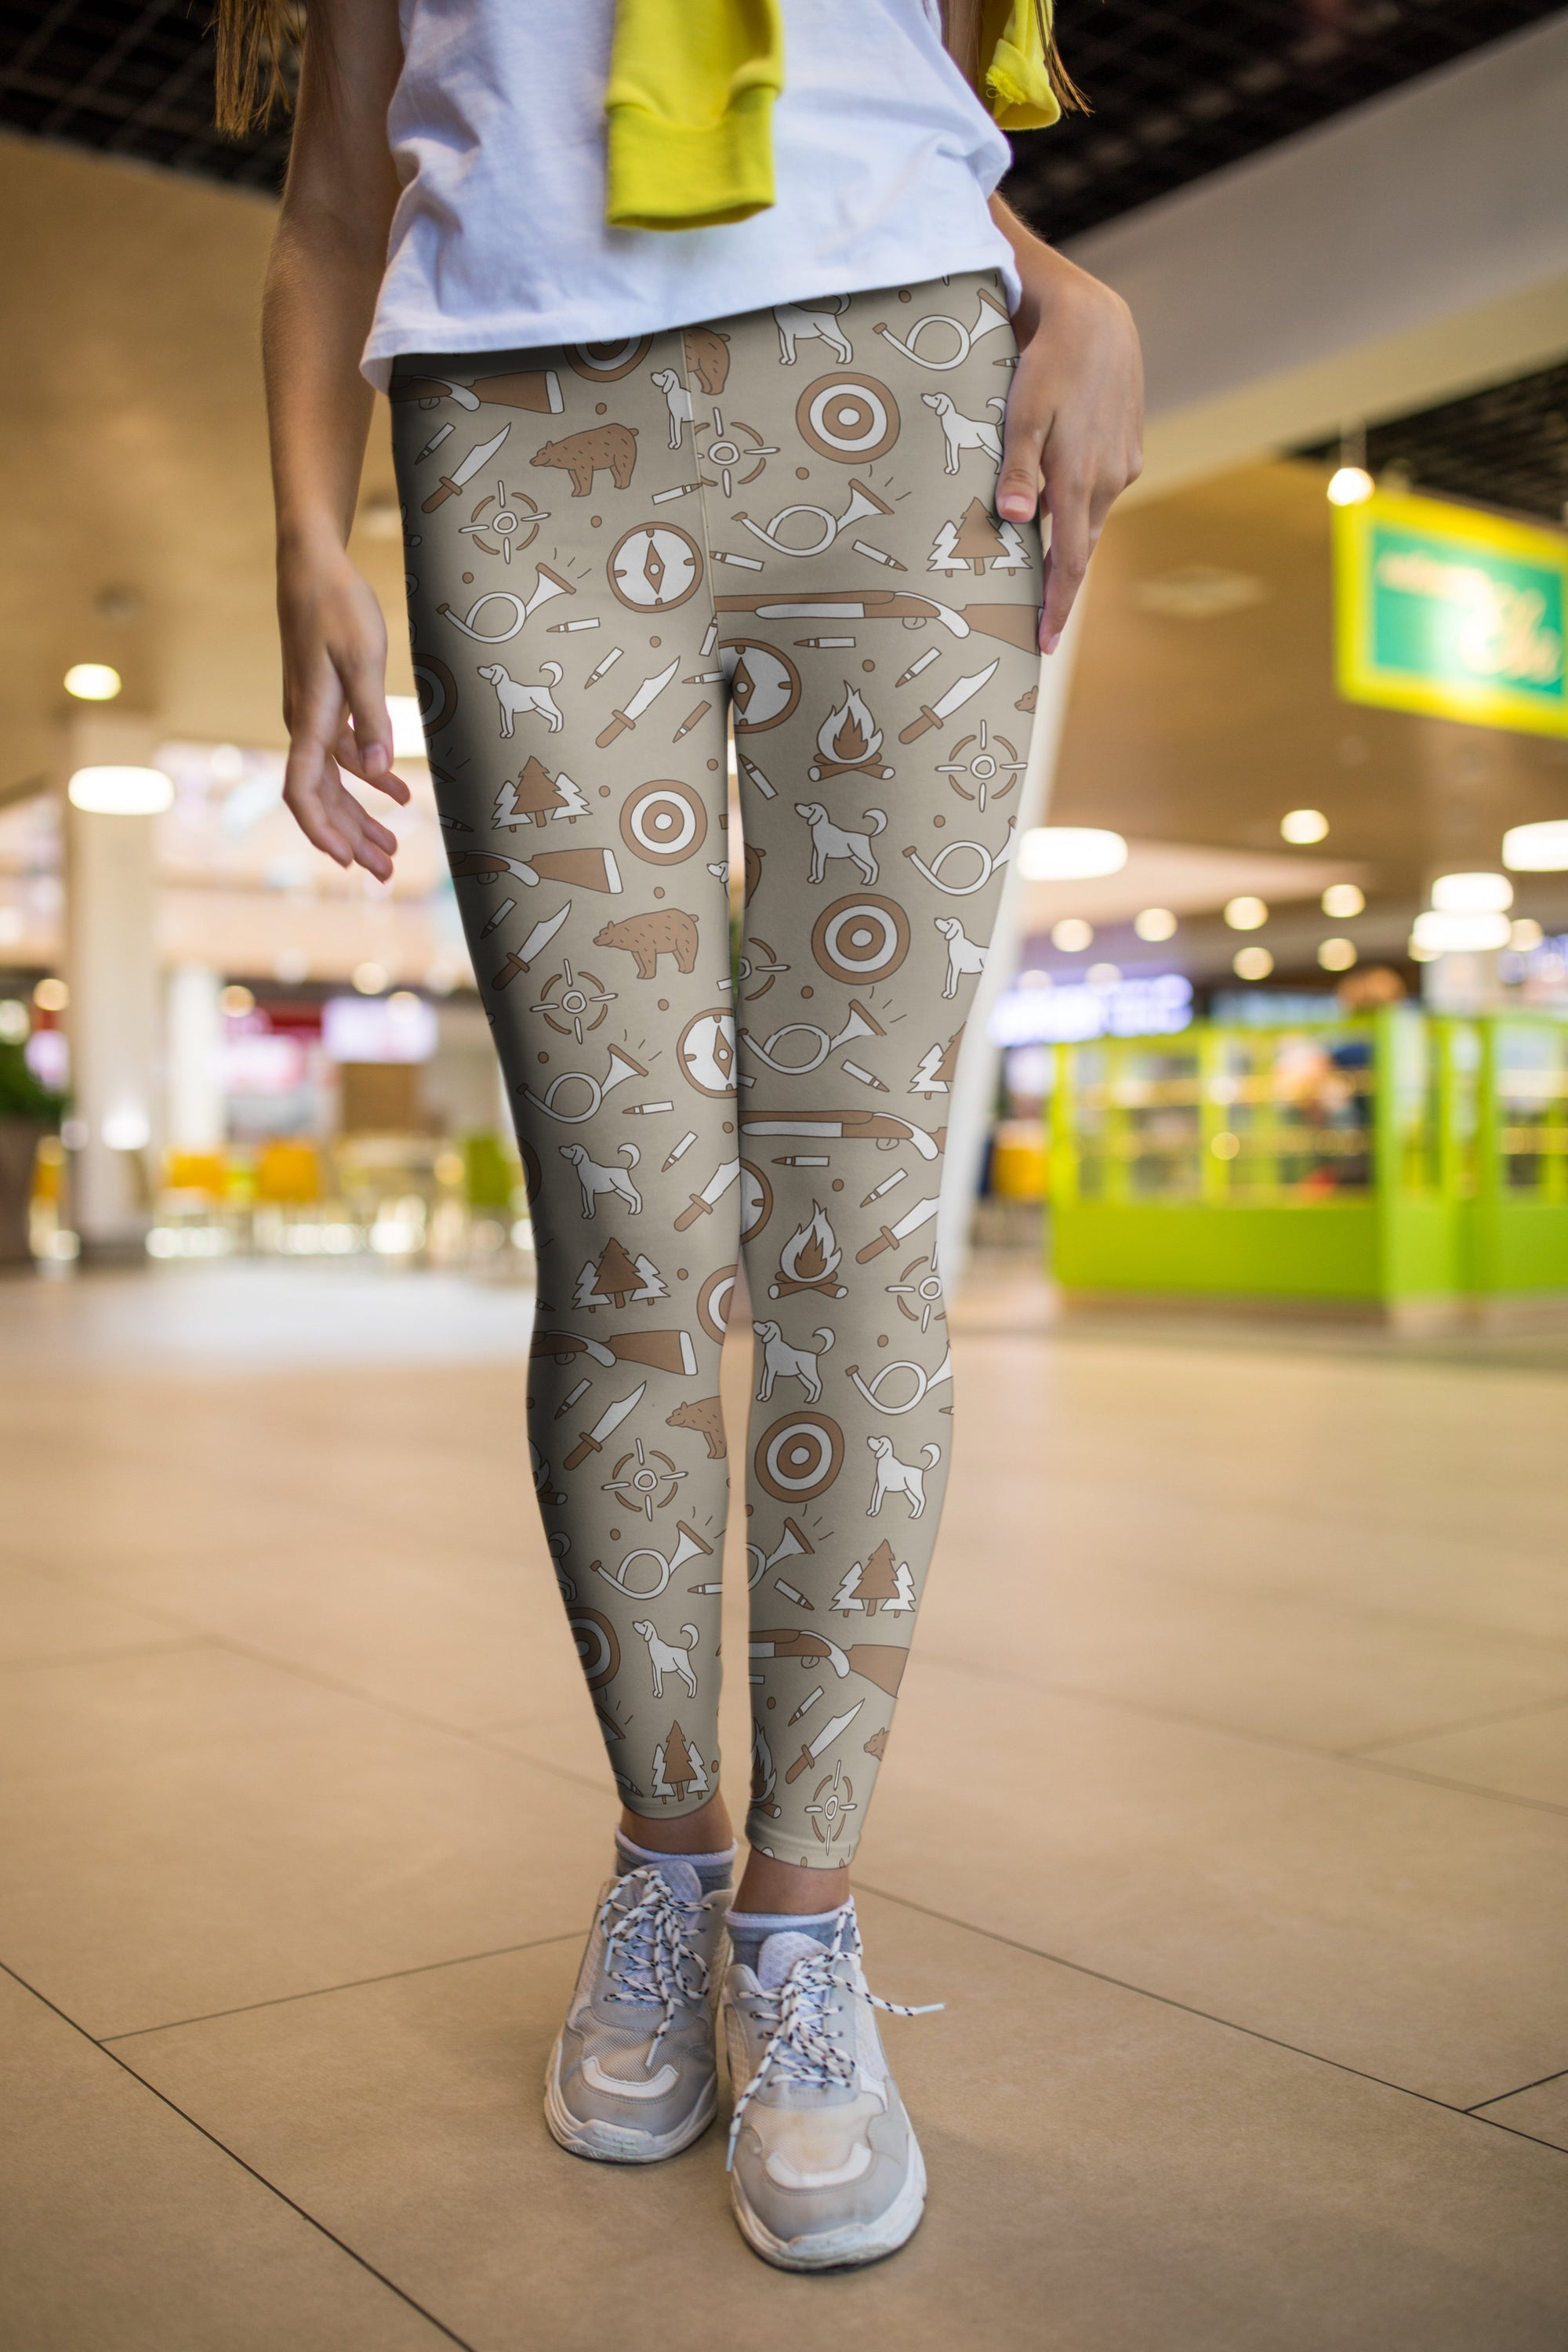 3D All Over Print Hunting Brown Bear Legging-Apparel-Khanh Arts-Legging-S-Vibe Cosy™